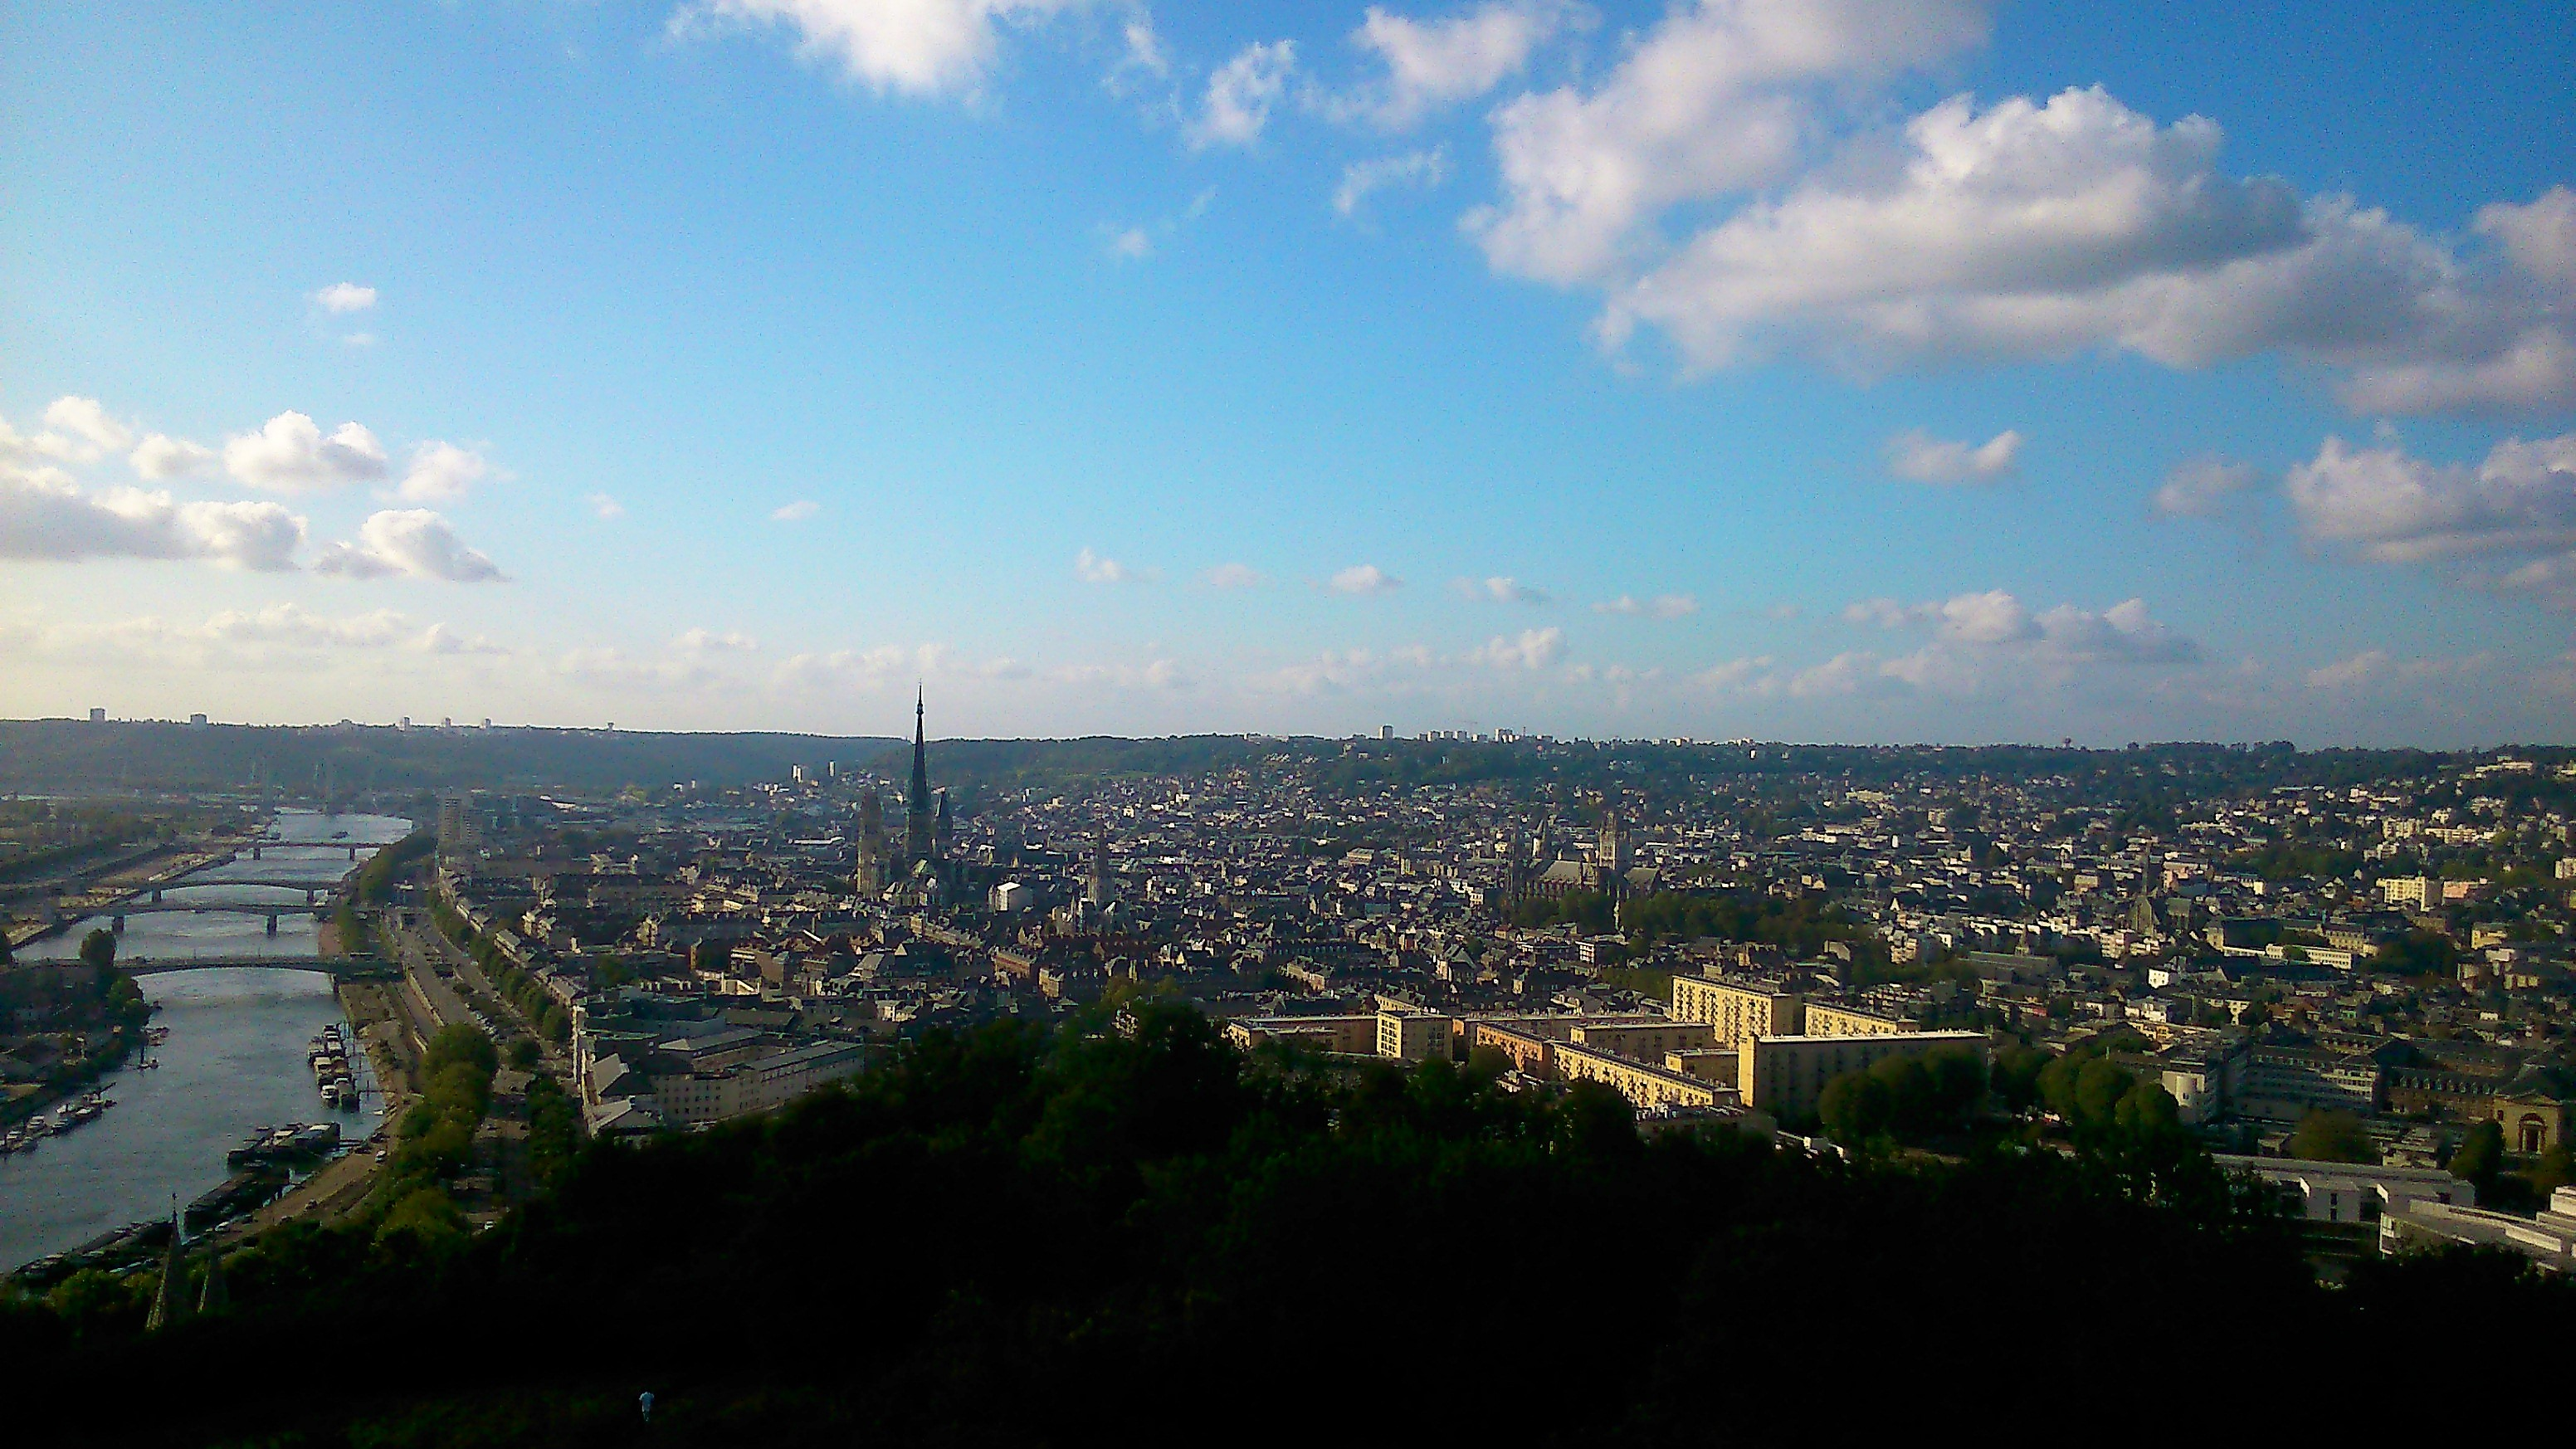 A panorama view of the city of Rouen in Normandy